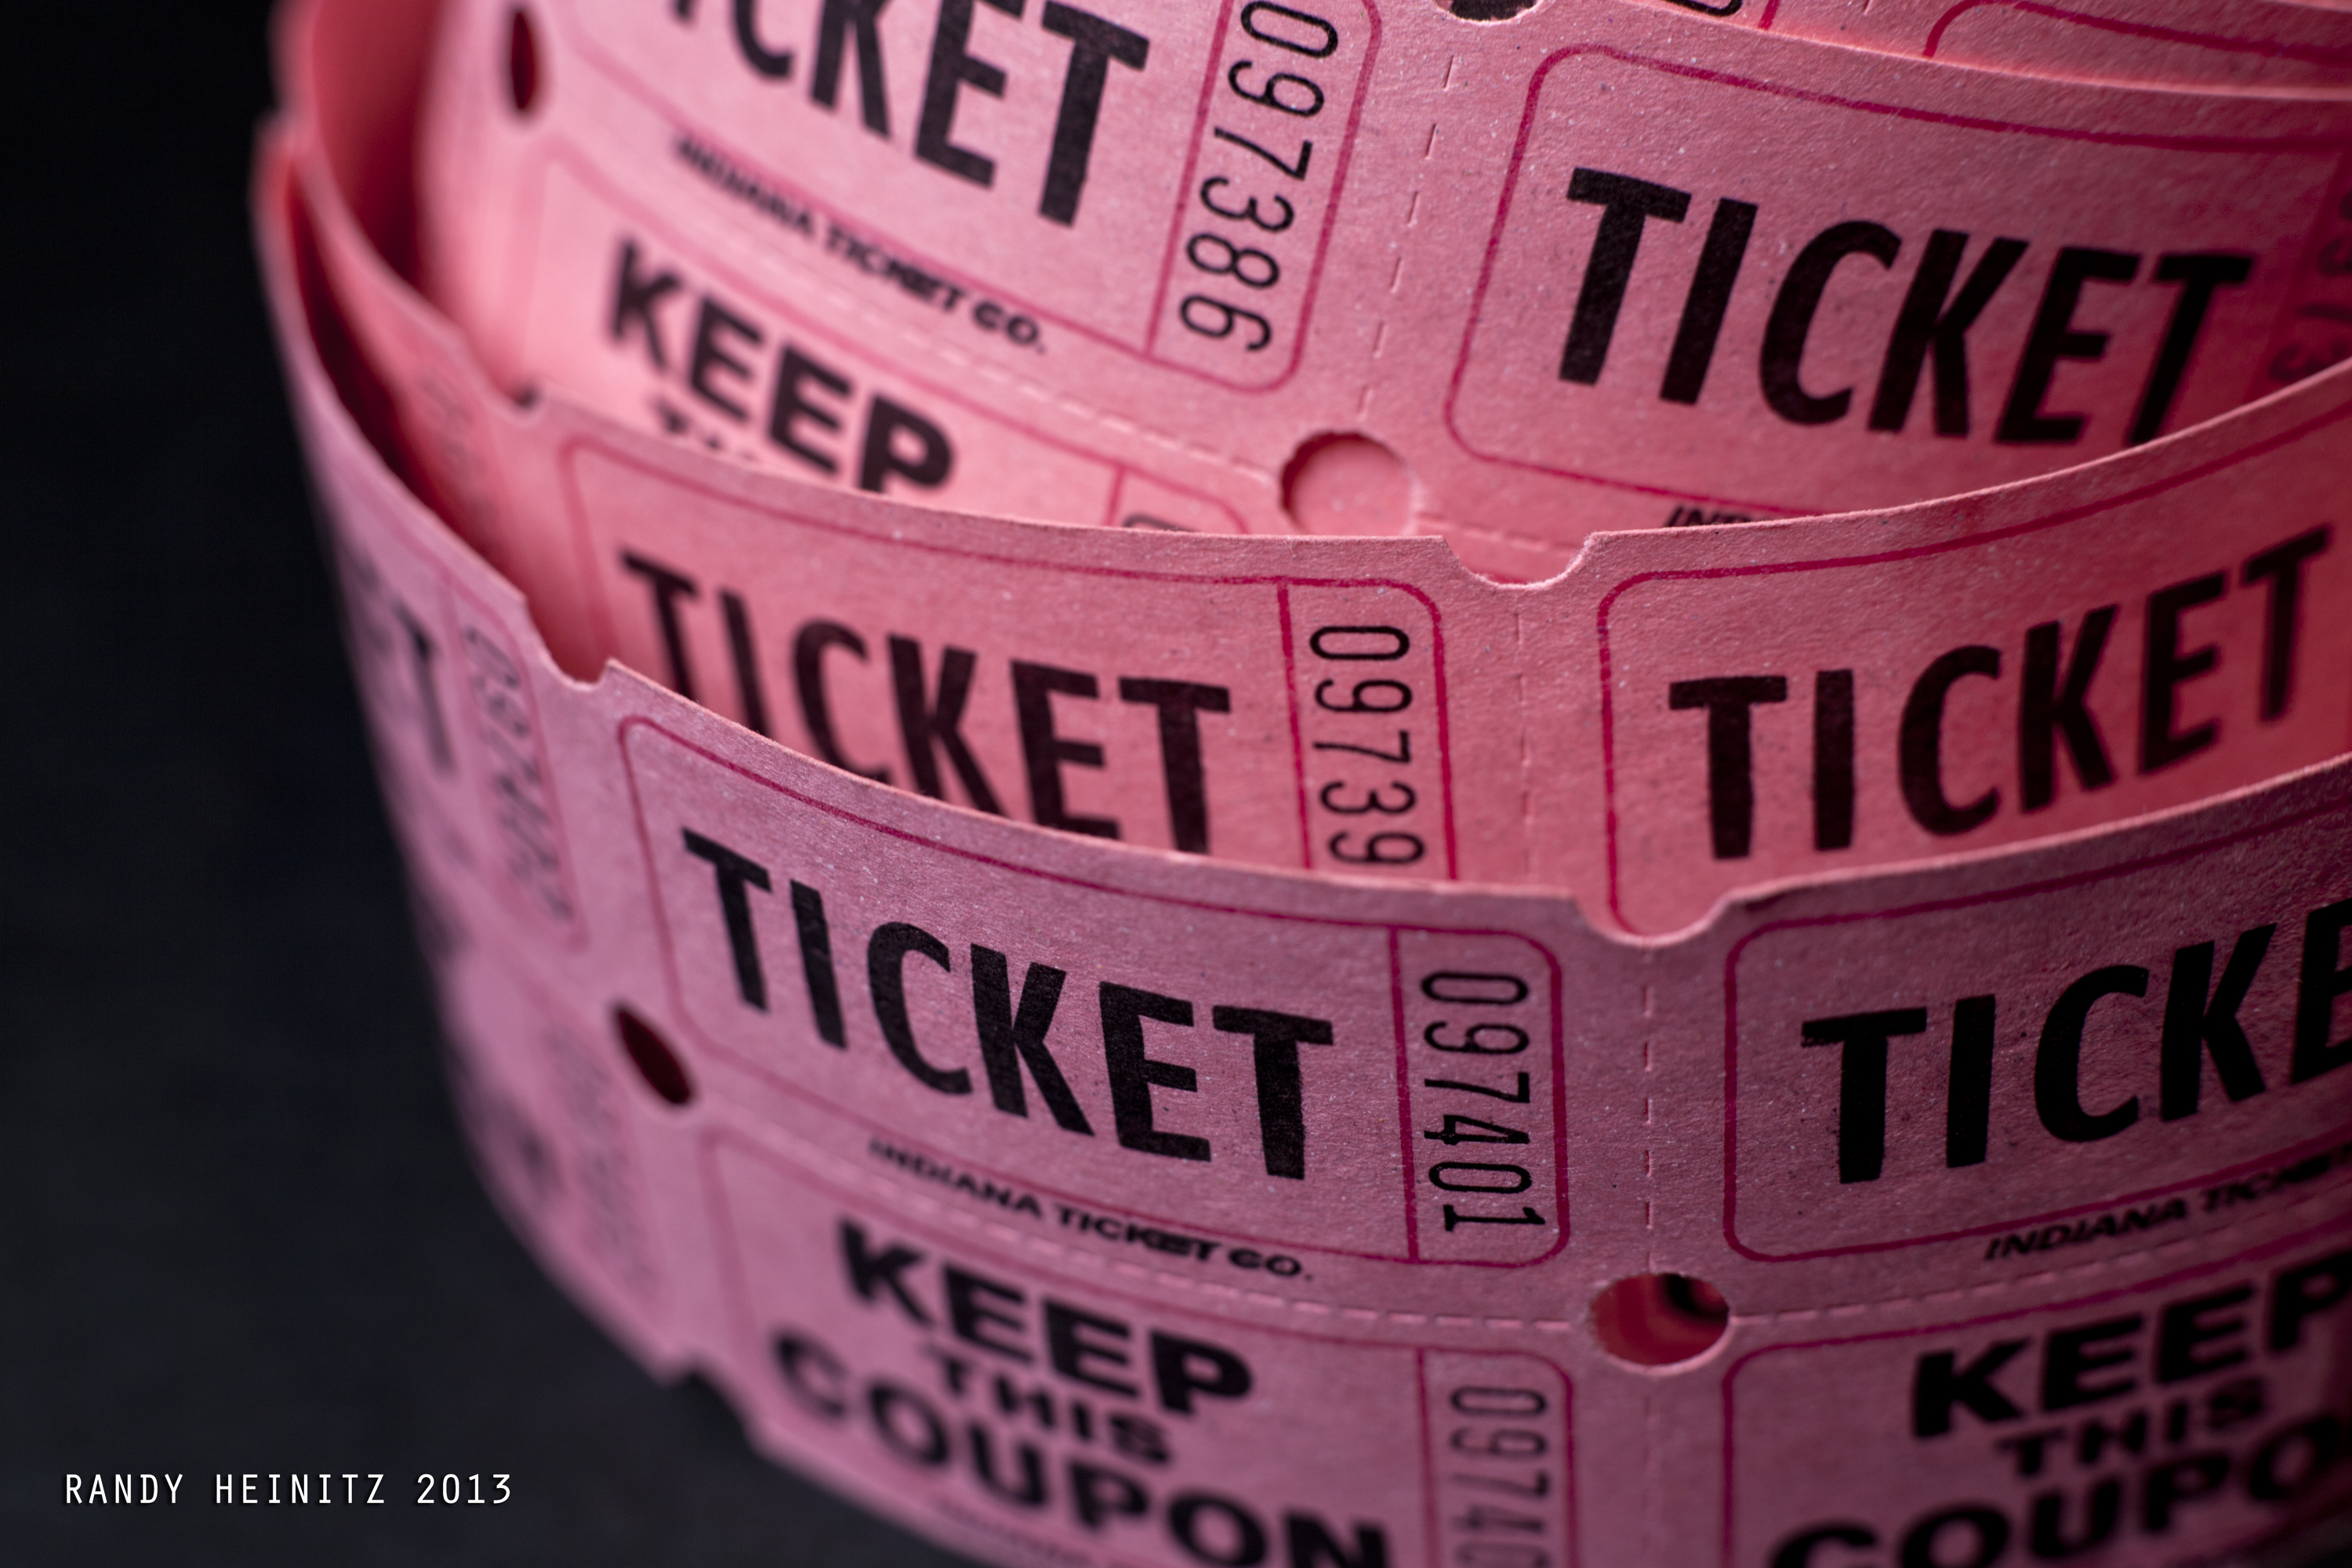 Raffle tickets. Photo by Randy Heinitz. (CC BY 2.0). https://creativecommons.org/licenses/by/2.0/